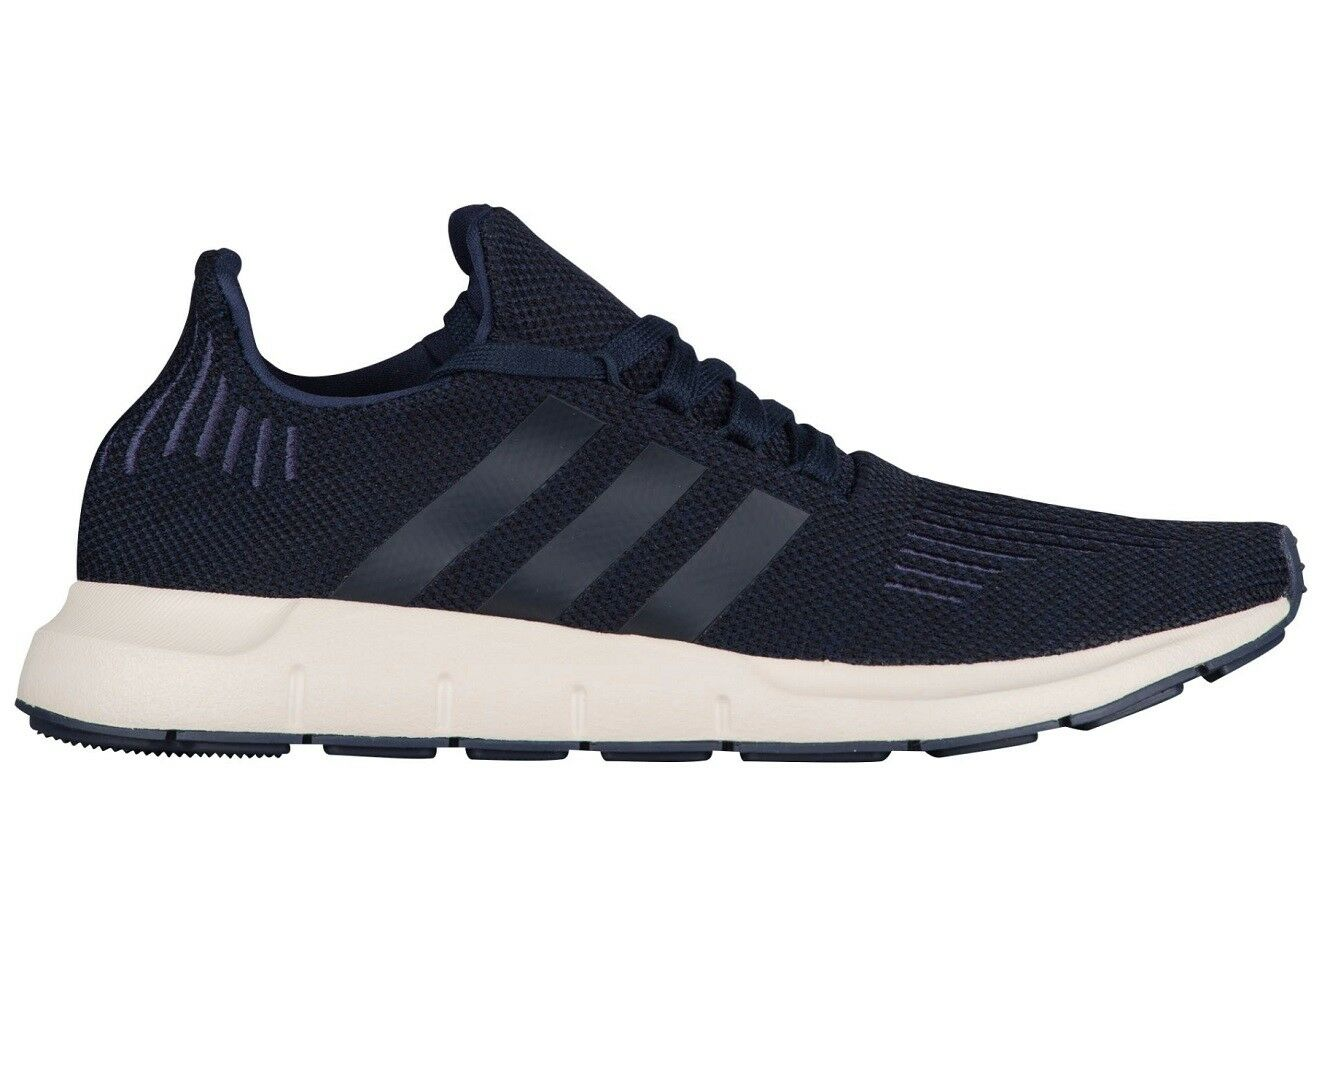 Adidas Swift Run Mens AC7165 Navy Trace Trace Trace Blue Knit Running Shoes Size 10 c05f8b